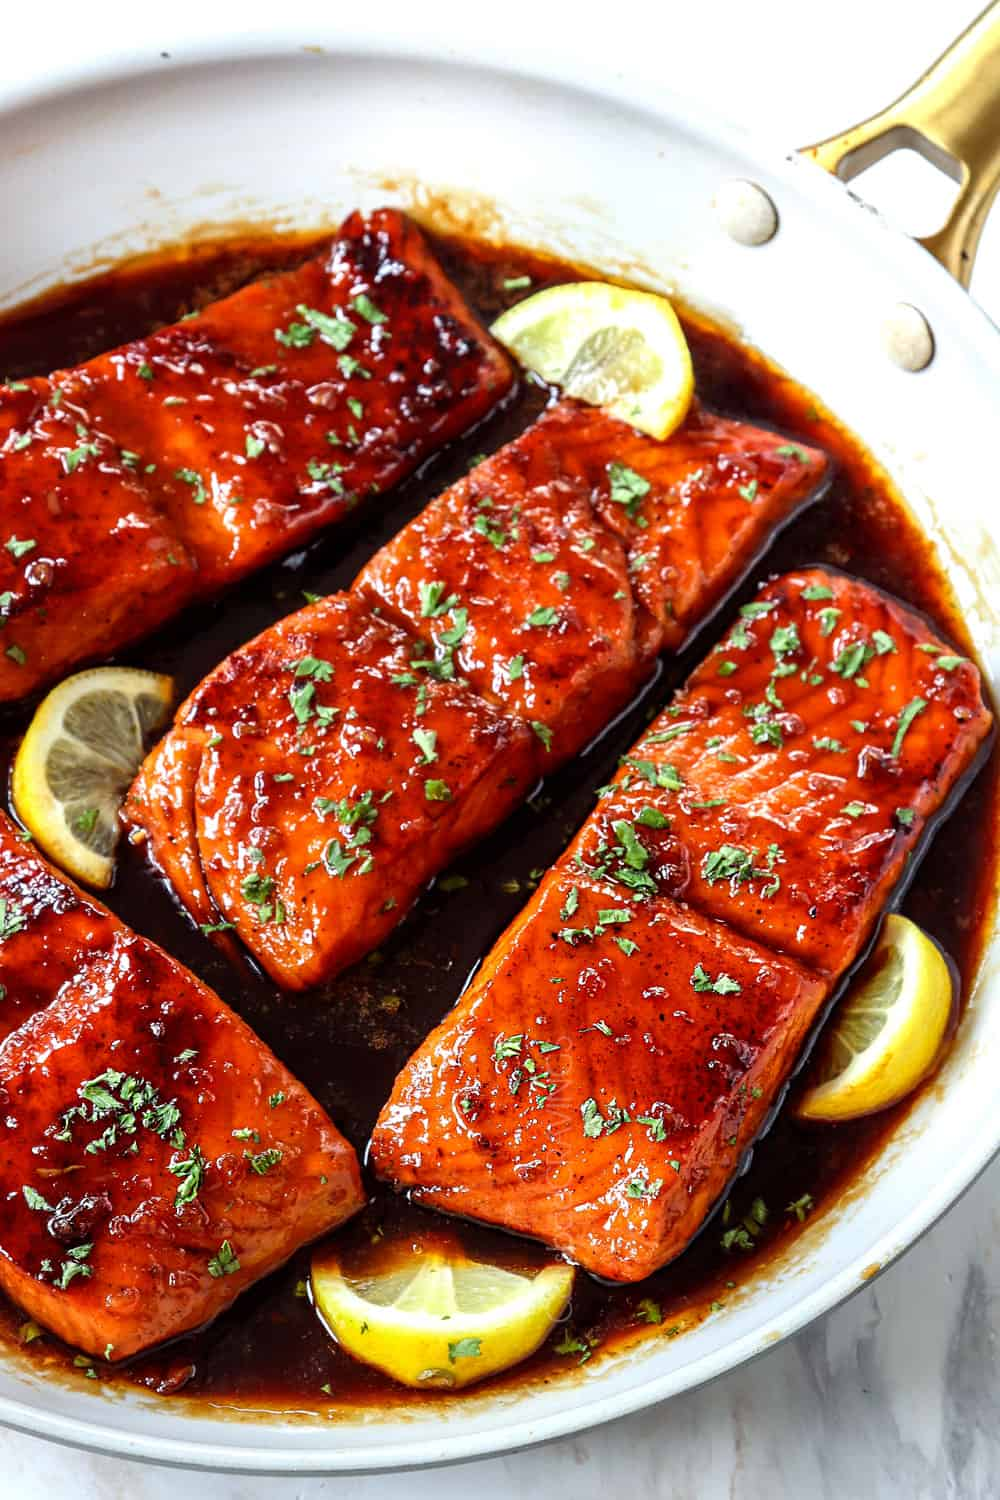 showing how to make honey garlic glazed salmon by drizzling salmon with honey garlic sauce while simmering in the skillet